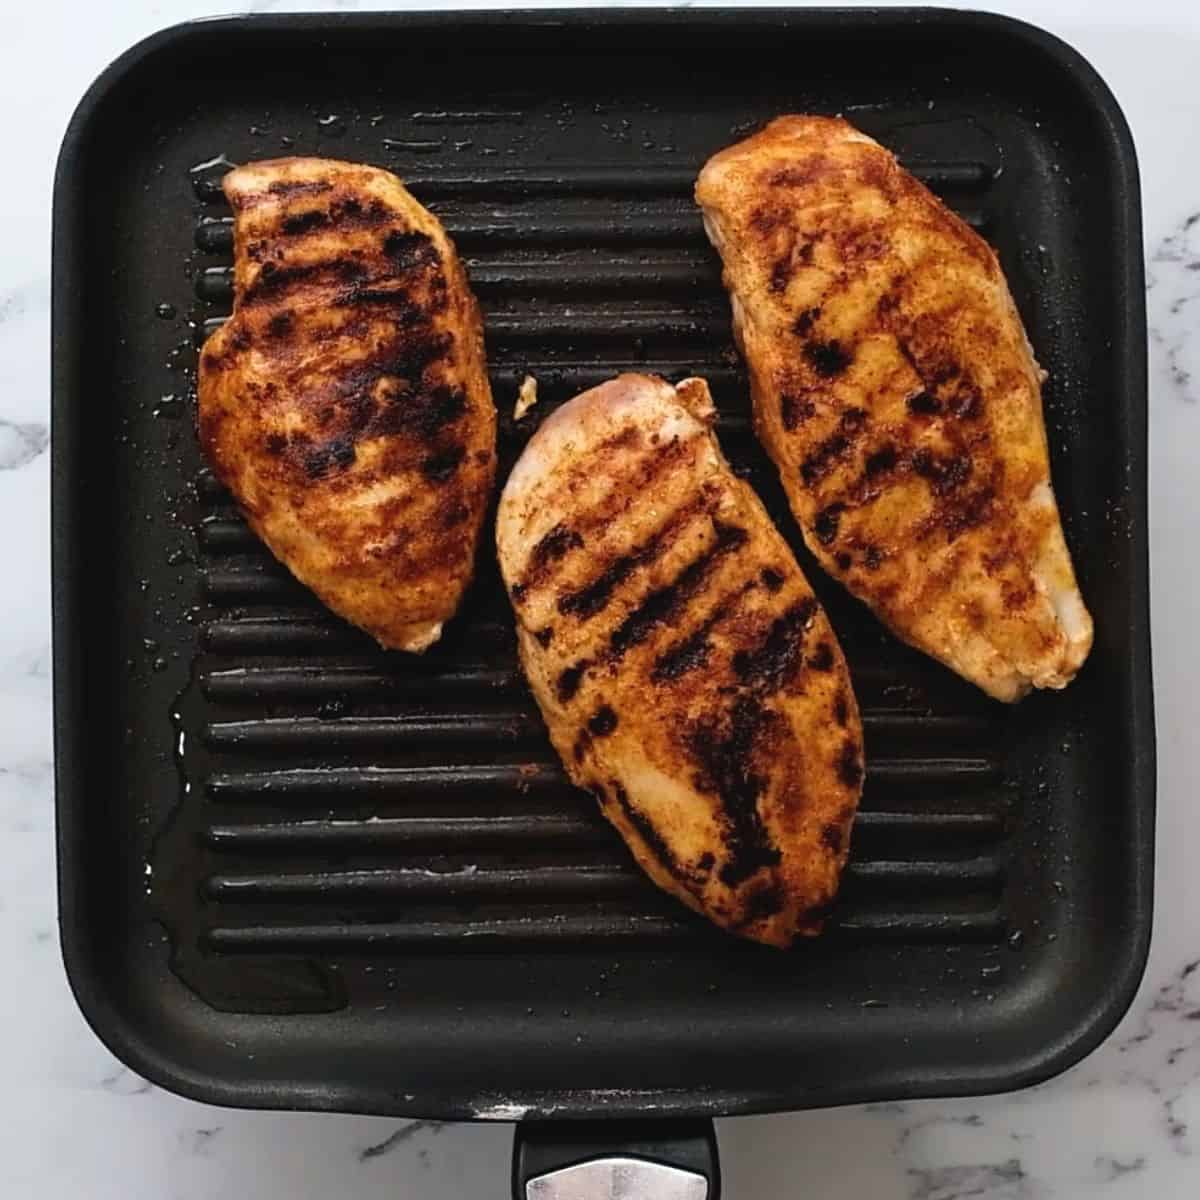 Grilled CHicken on grill plate.